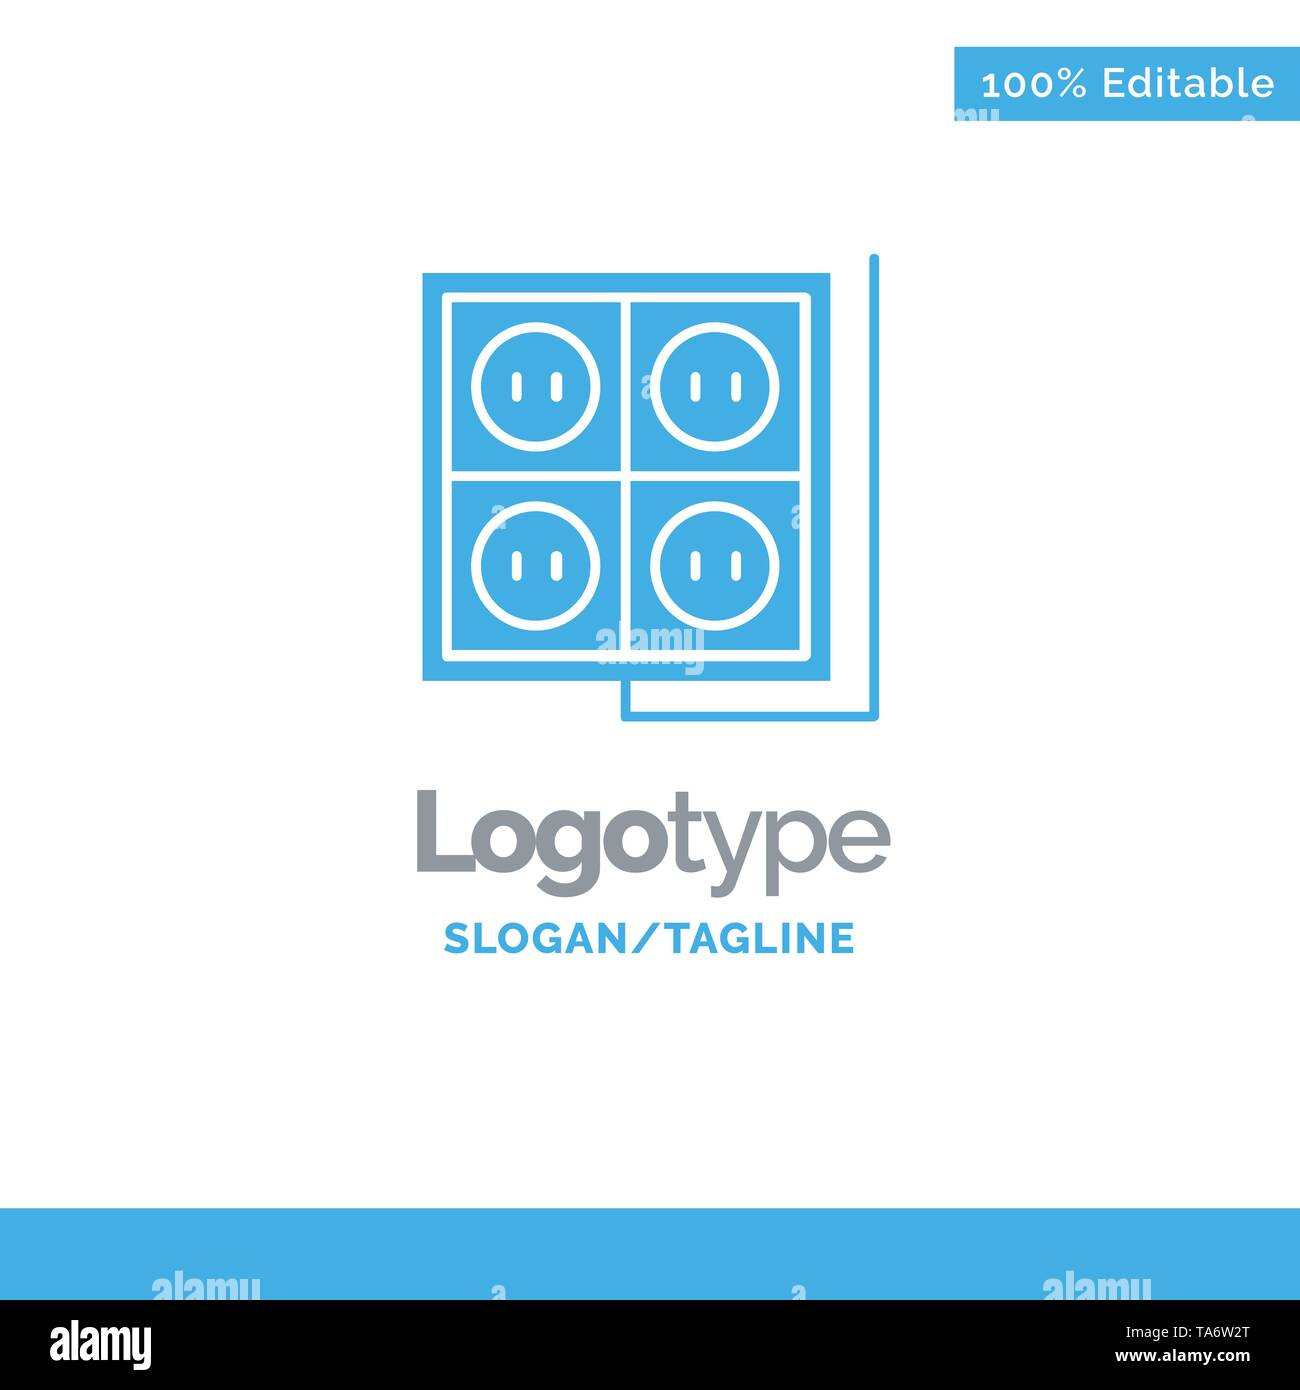 Building, Construction, Plug, Socket, Tool Blue Solid Logo Template. Place for Tagline - Stock Image